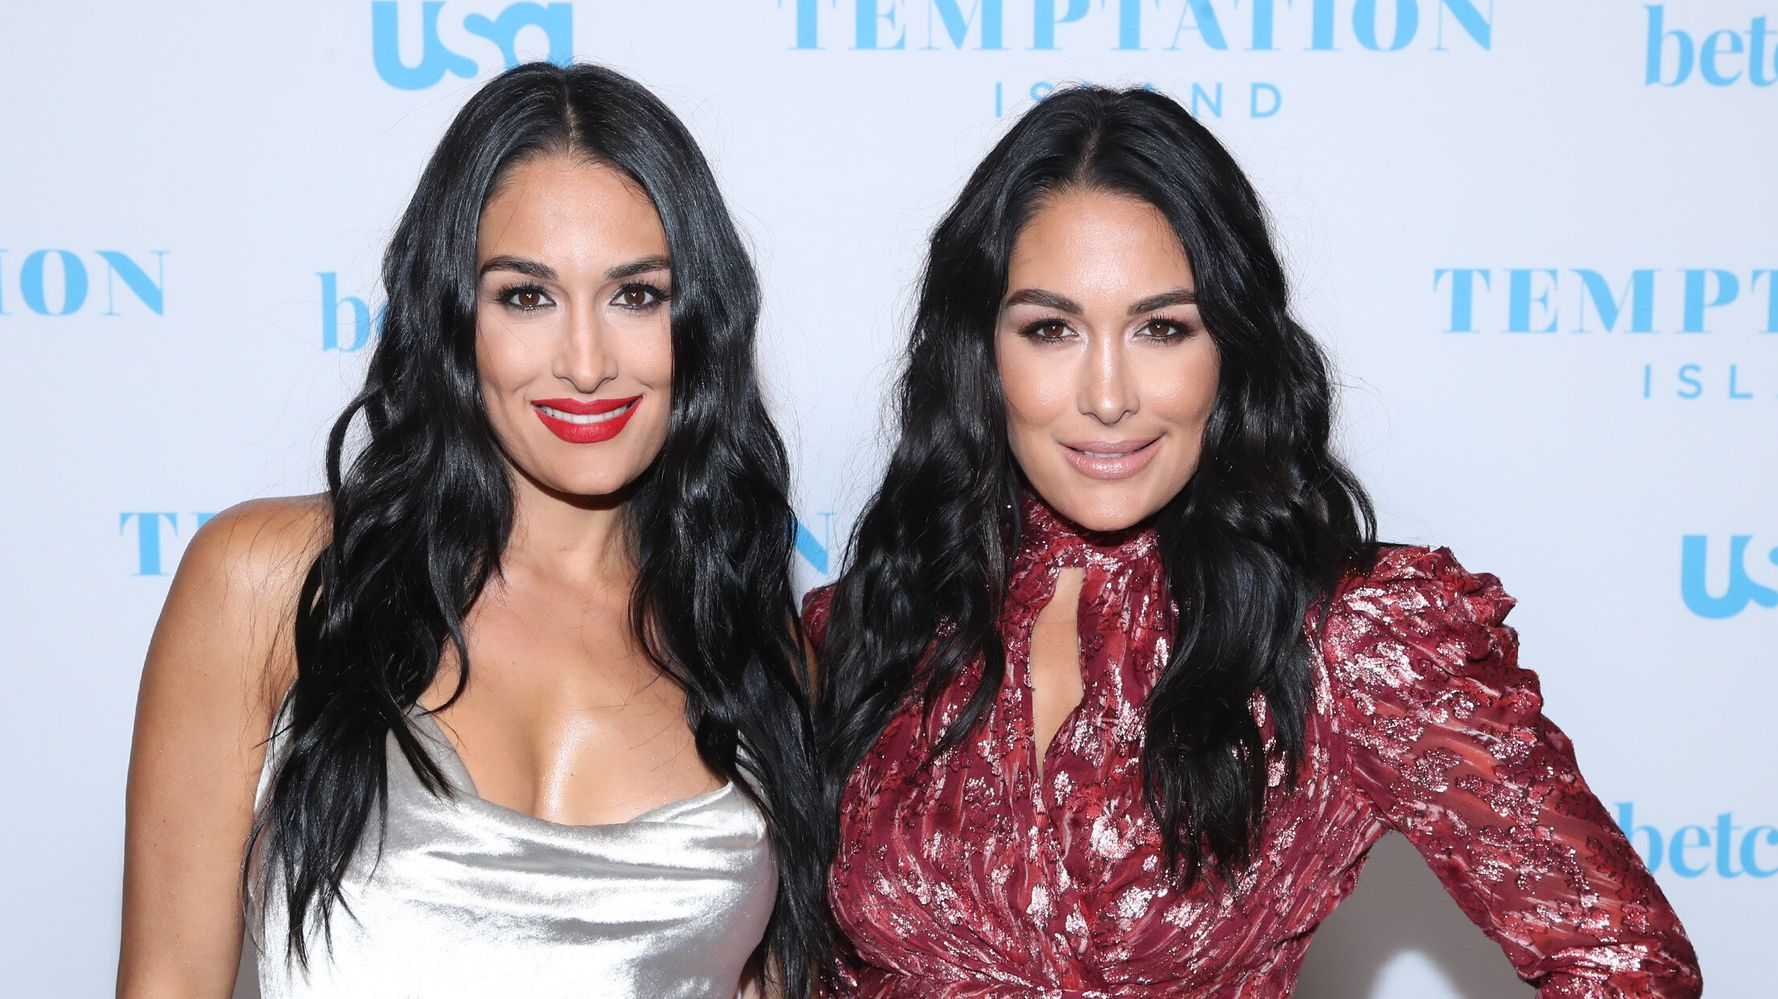 HuffPost on Flipboard: Nikki Bella, Brie Bella Reveal Their Baby Boys' Names  To The World